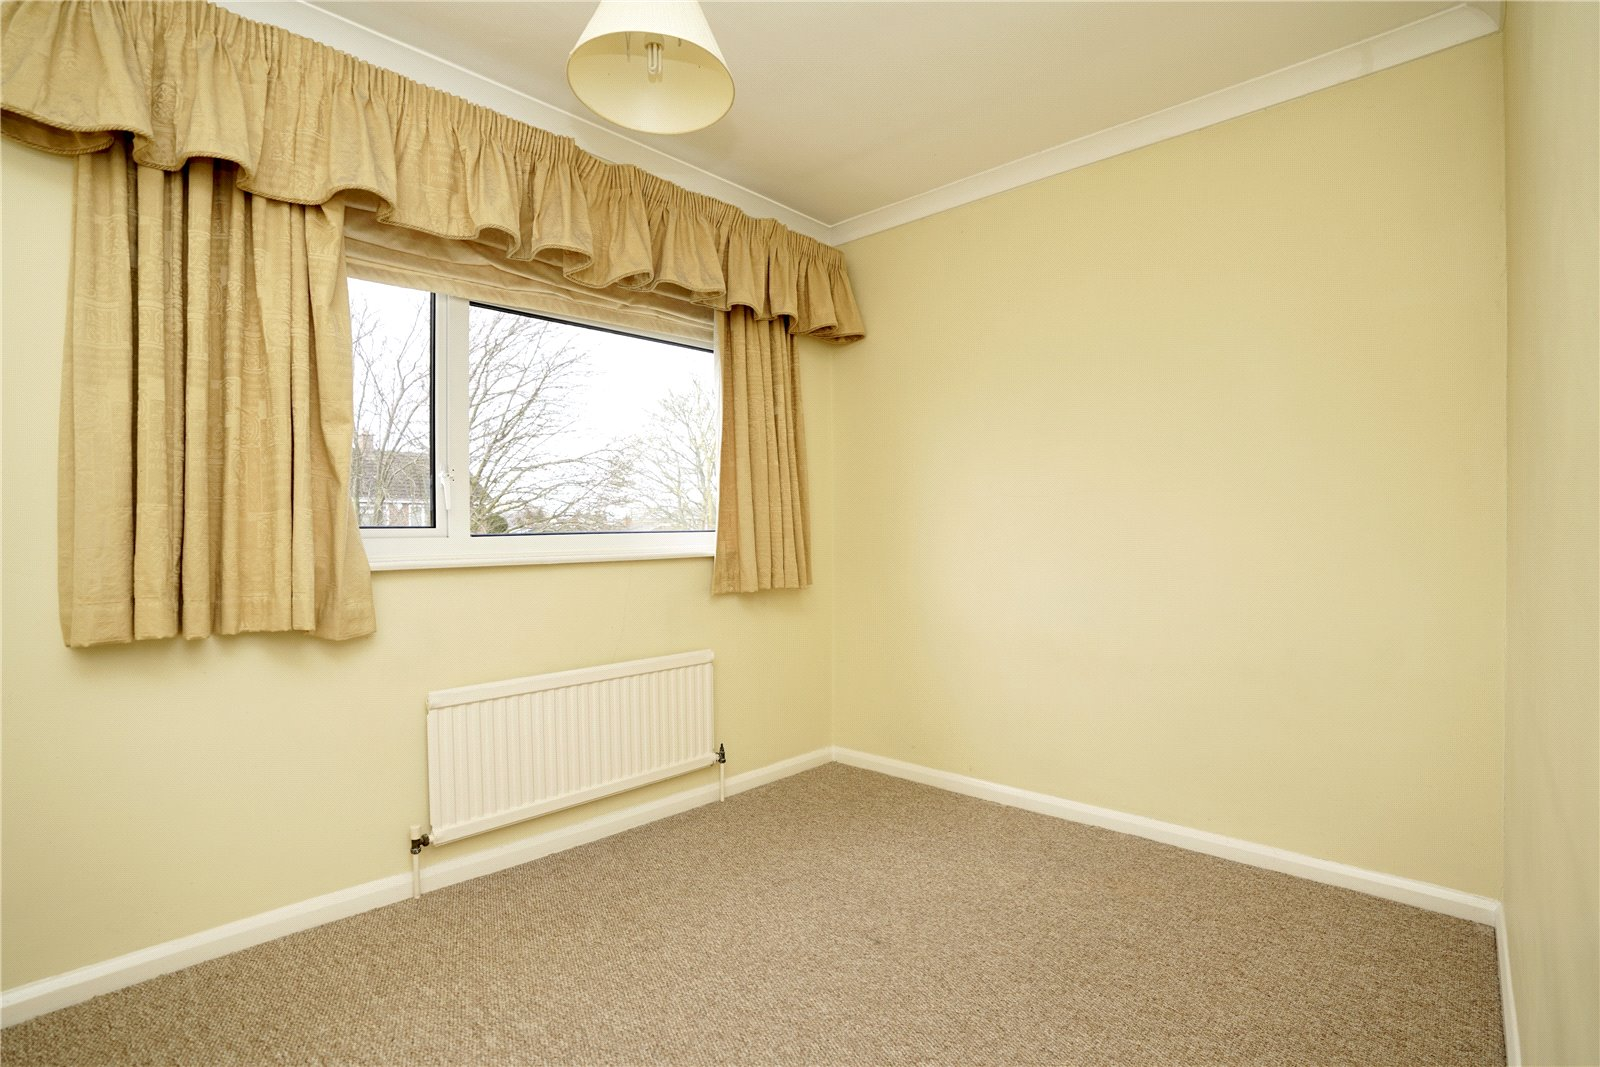 4 bed house for sale in Manor Close, Great Staughton  - Property Image 9